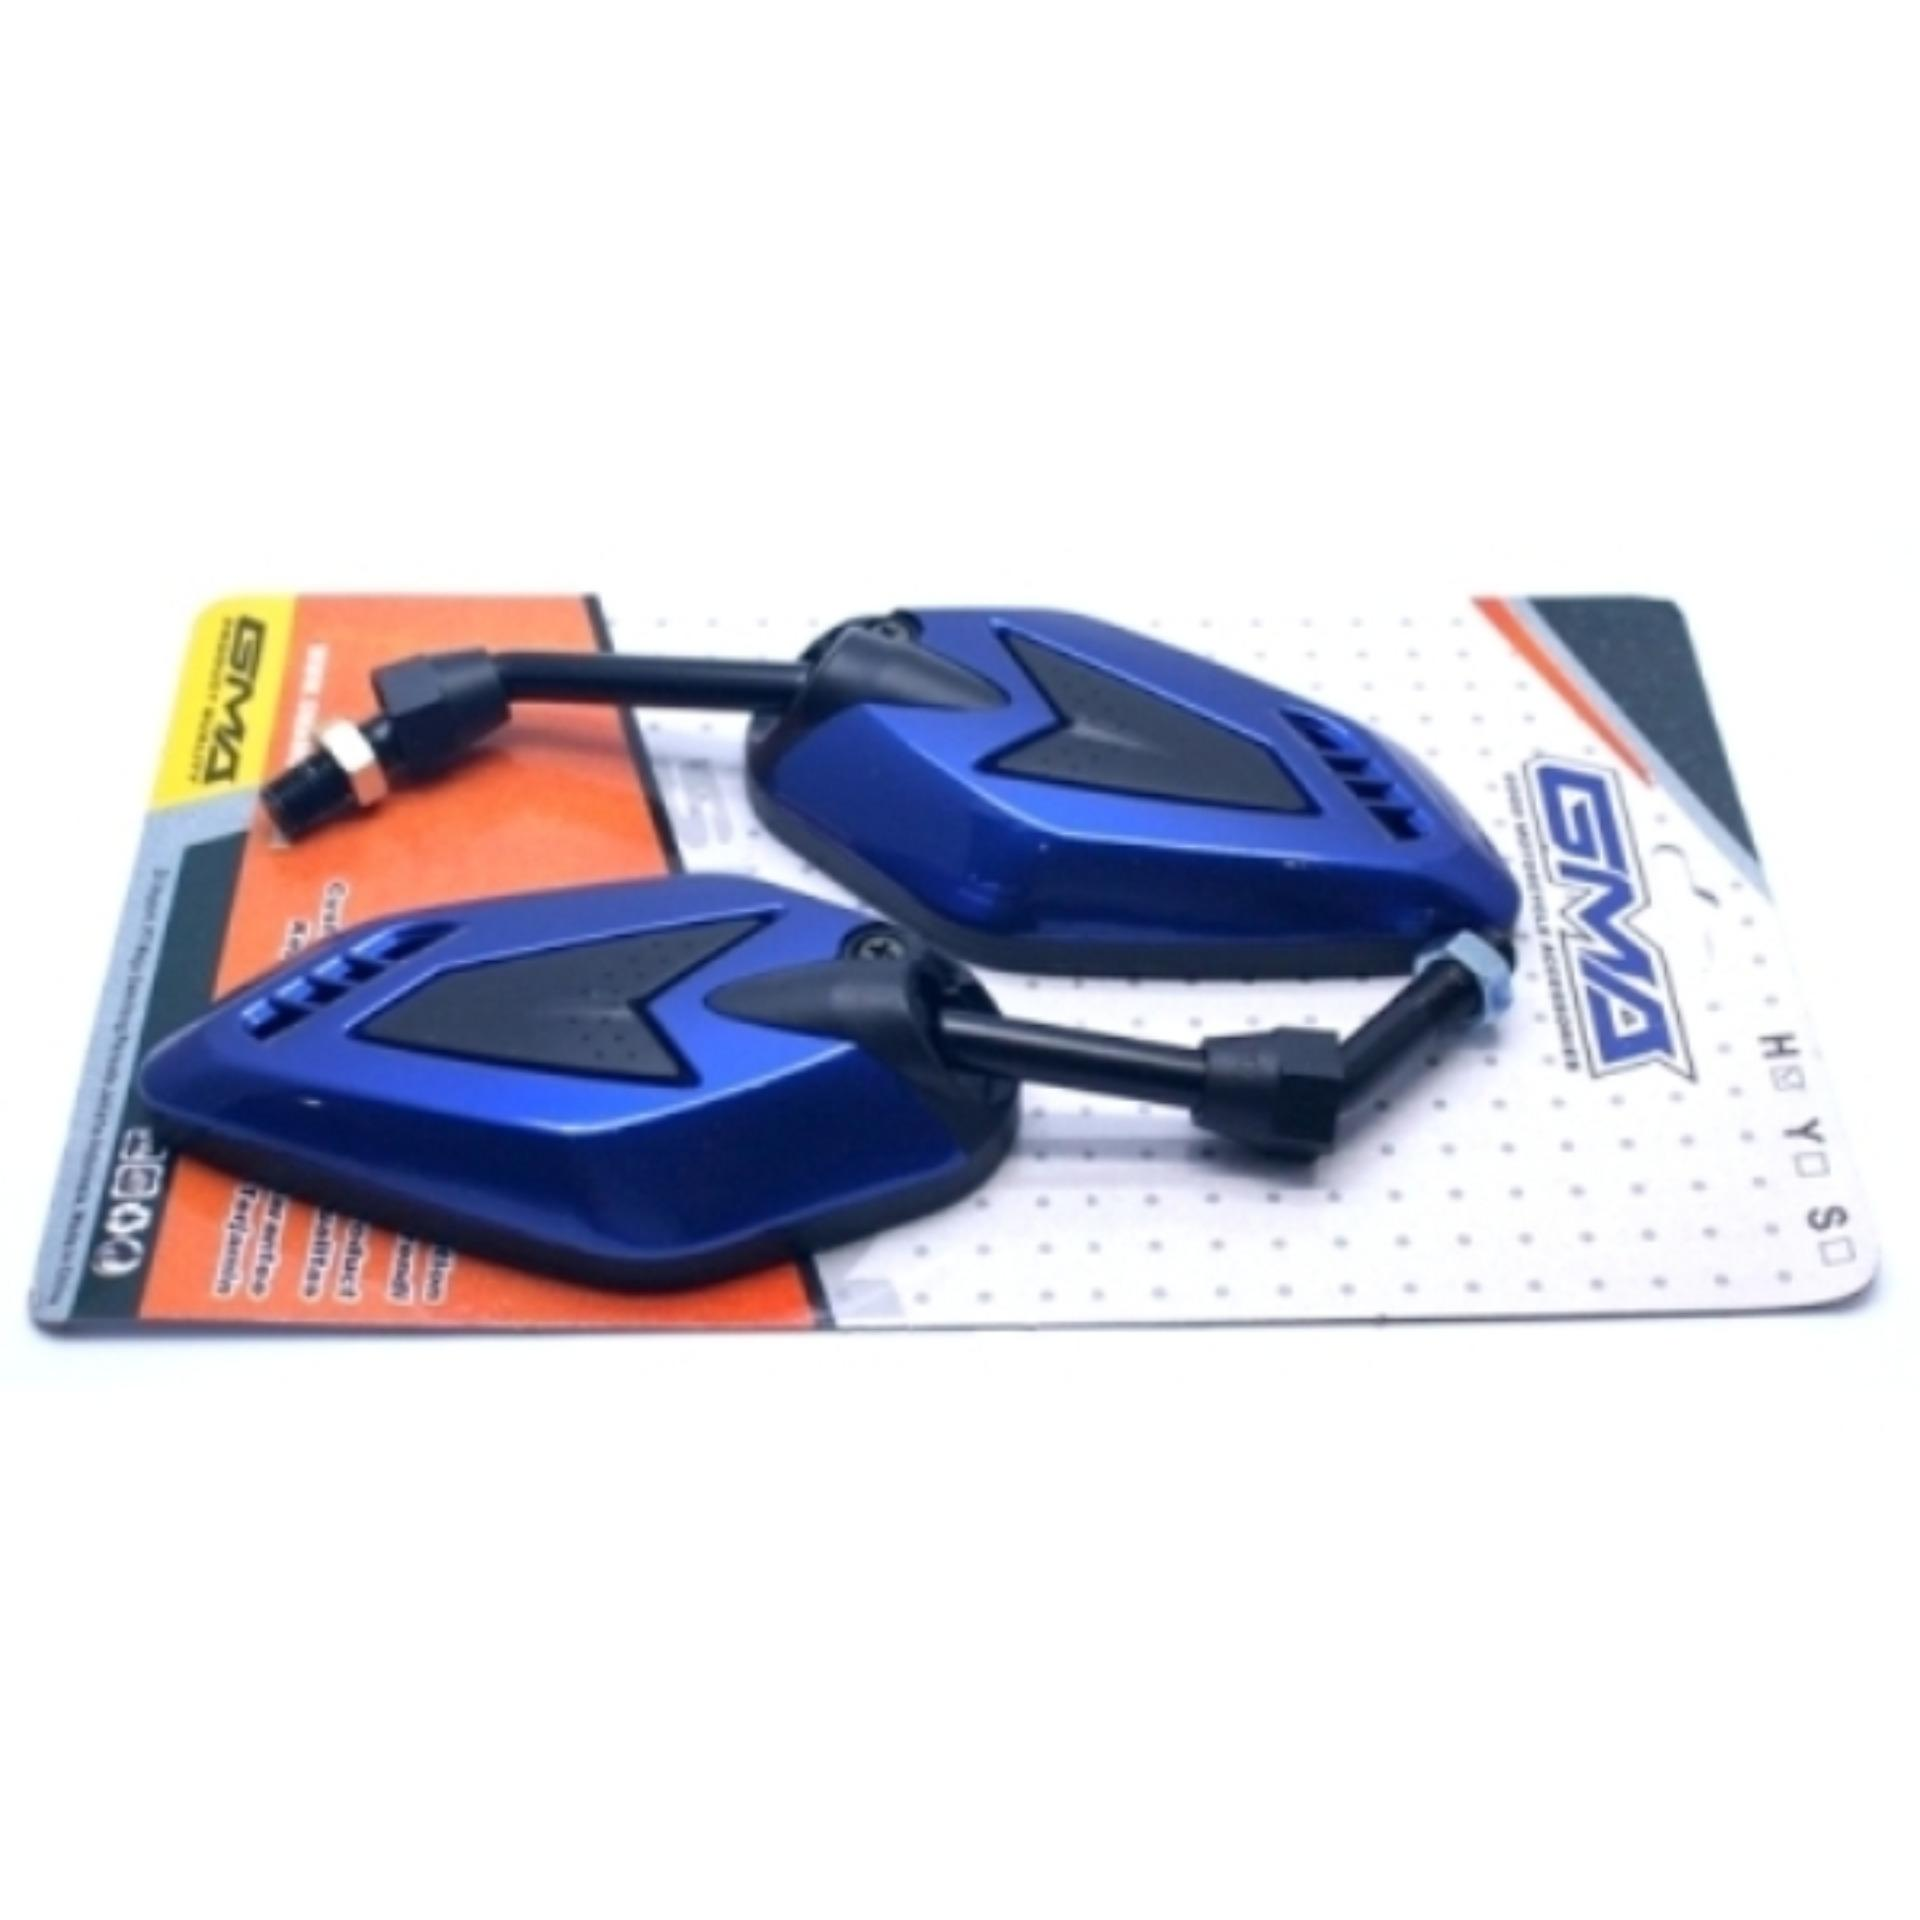 SPION GMA 1225 MINI BLUE HONDA Rp. 35,100.00